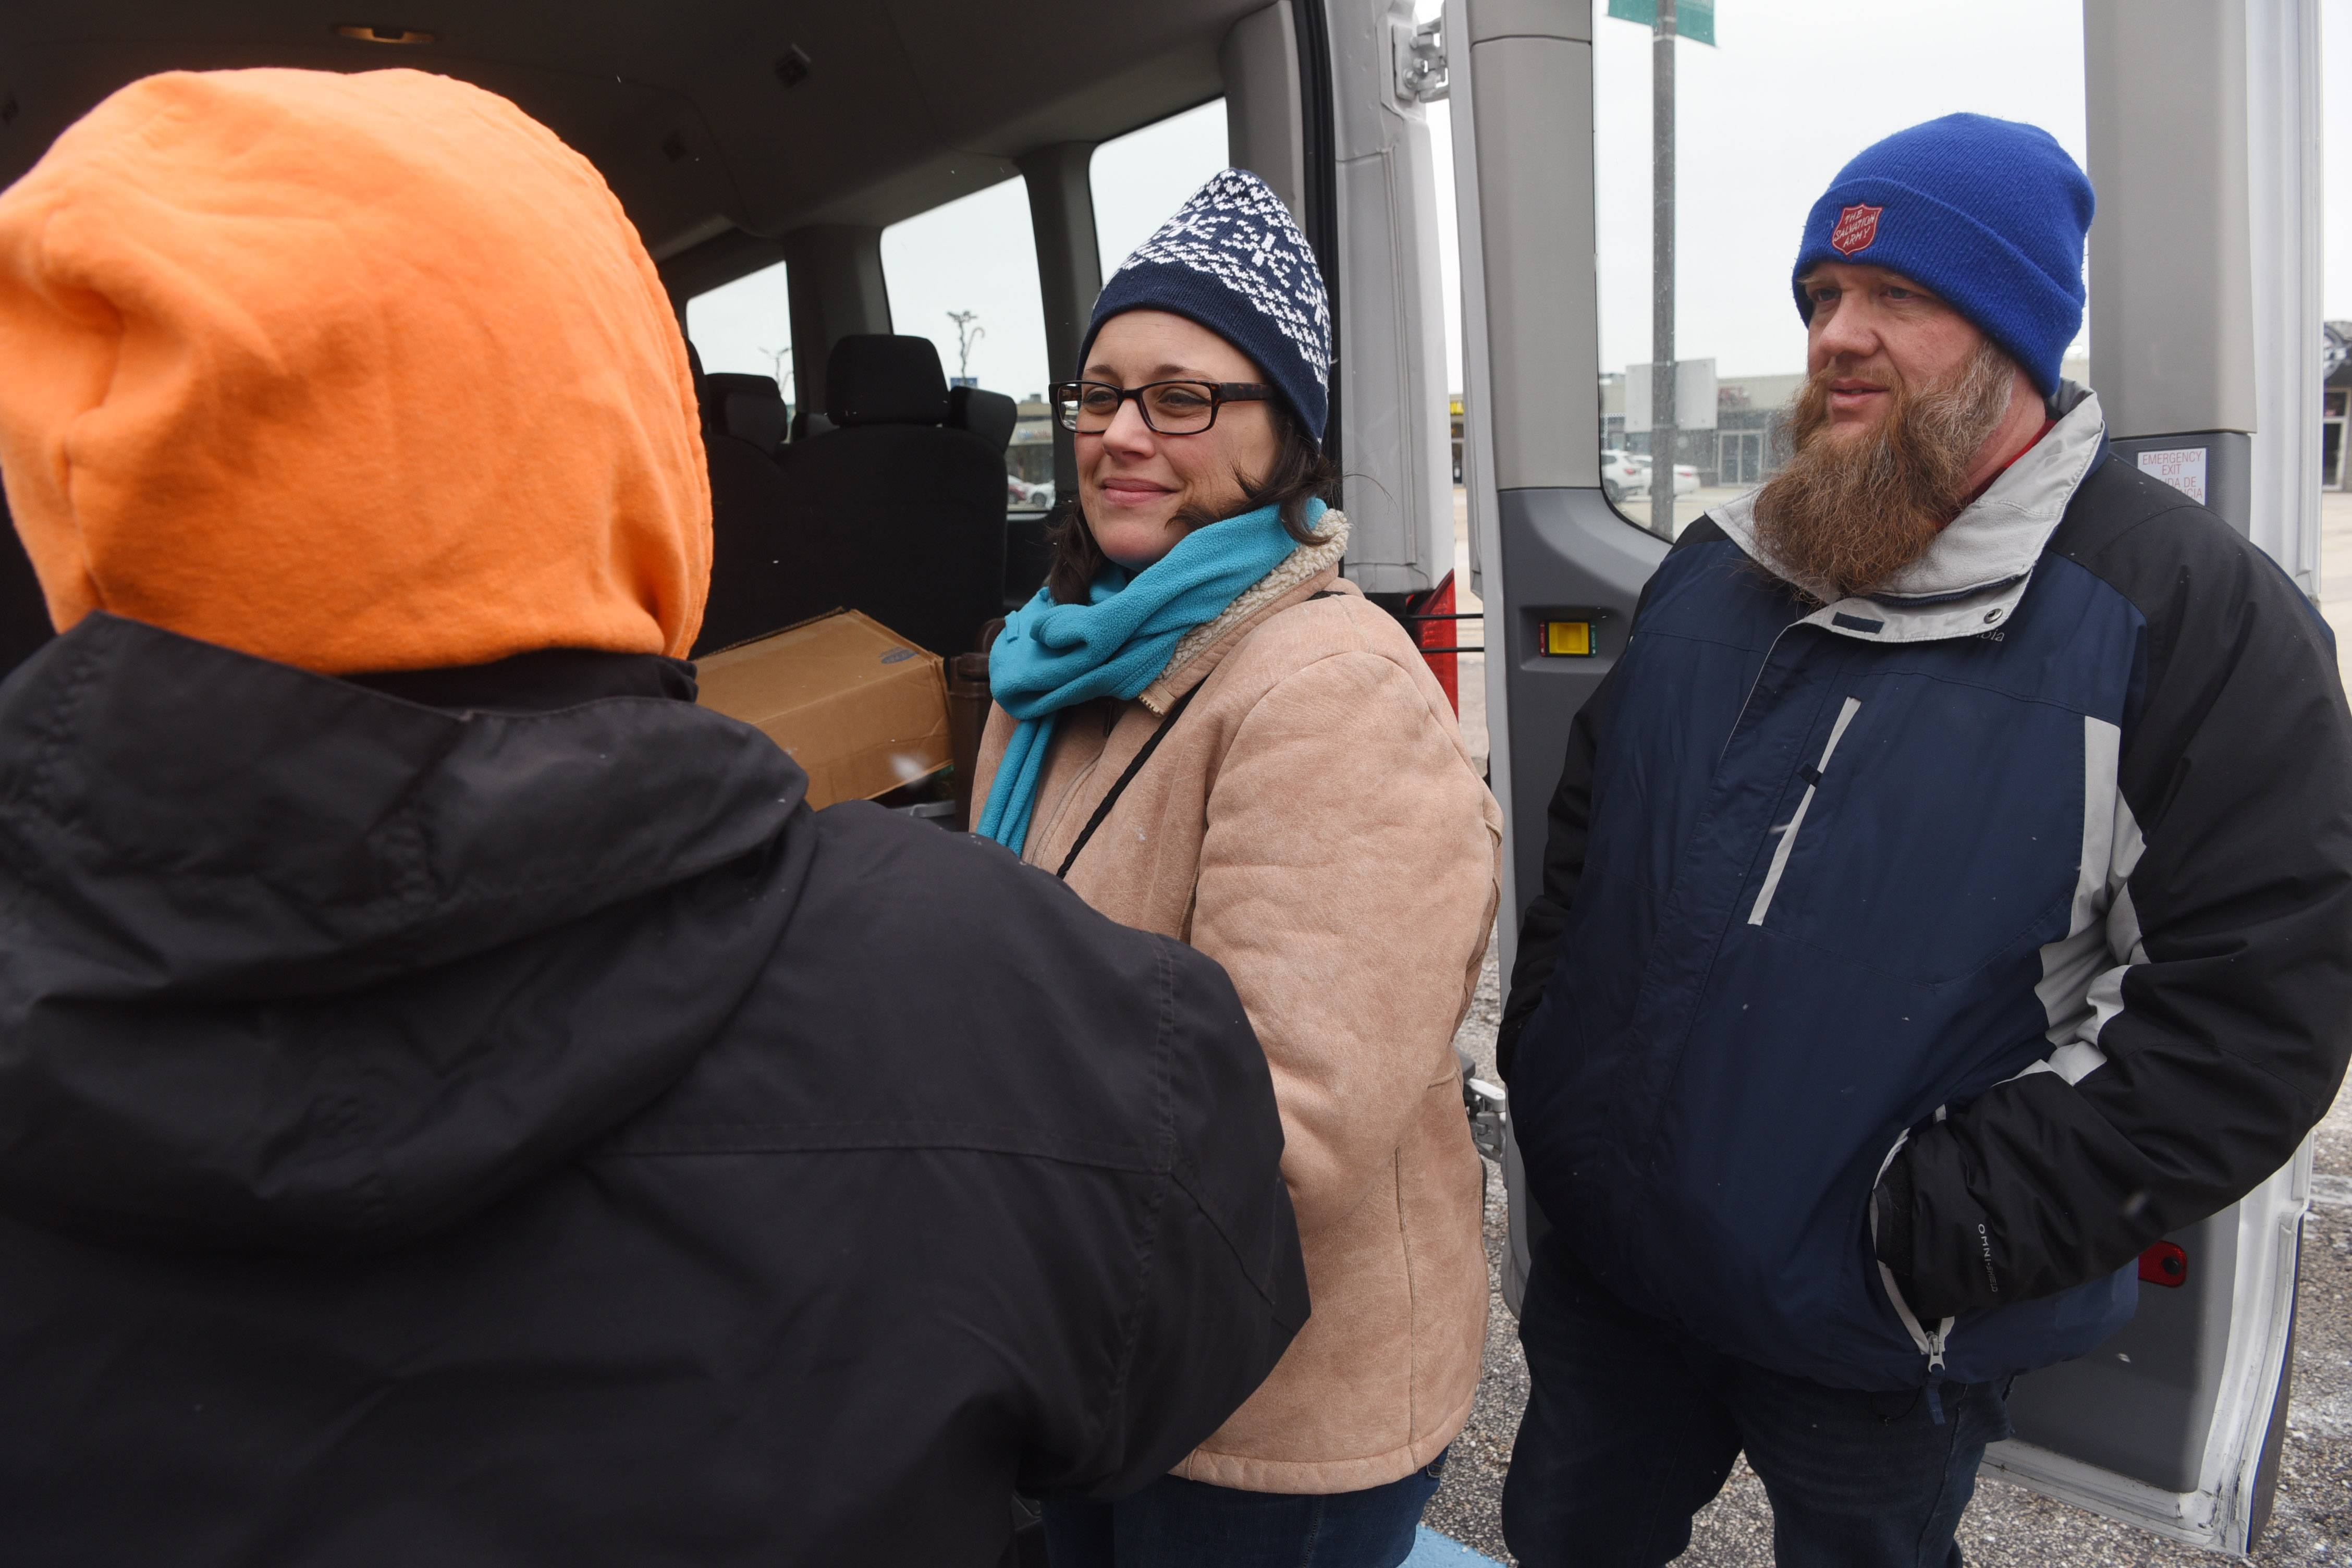 In a ritual repeated every Tuesday and Friday, homeless people come out to meet Bill and Debbi Middendorp and their Salvation Army van. At this stop in Prospect Heights, the couple pass out sandwiches, snacks, water, hygiene products, coats, gloves, blankets and other necessities.